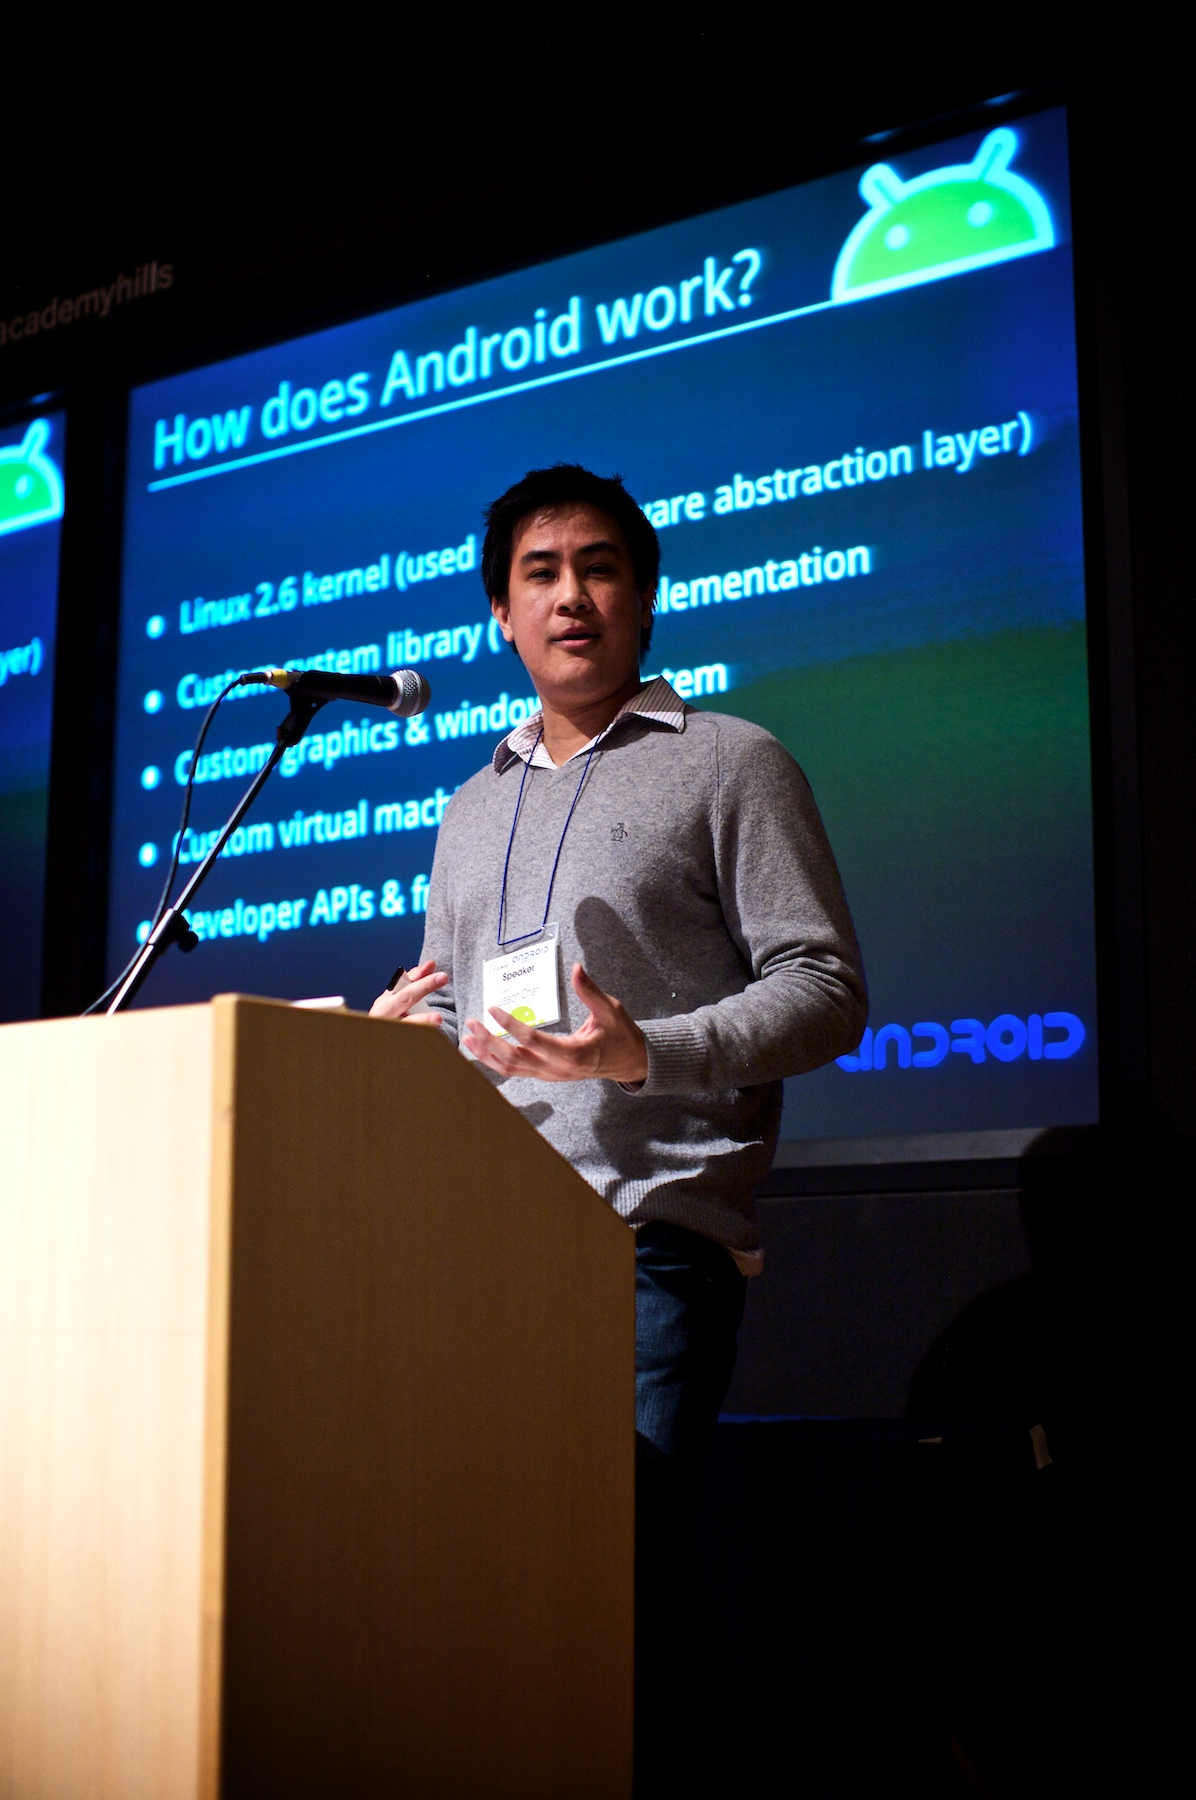 Photo: Giving my stump speech about Android to developers in Tokyo.